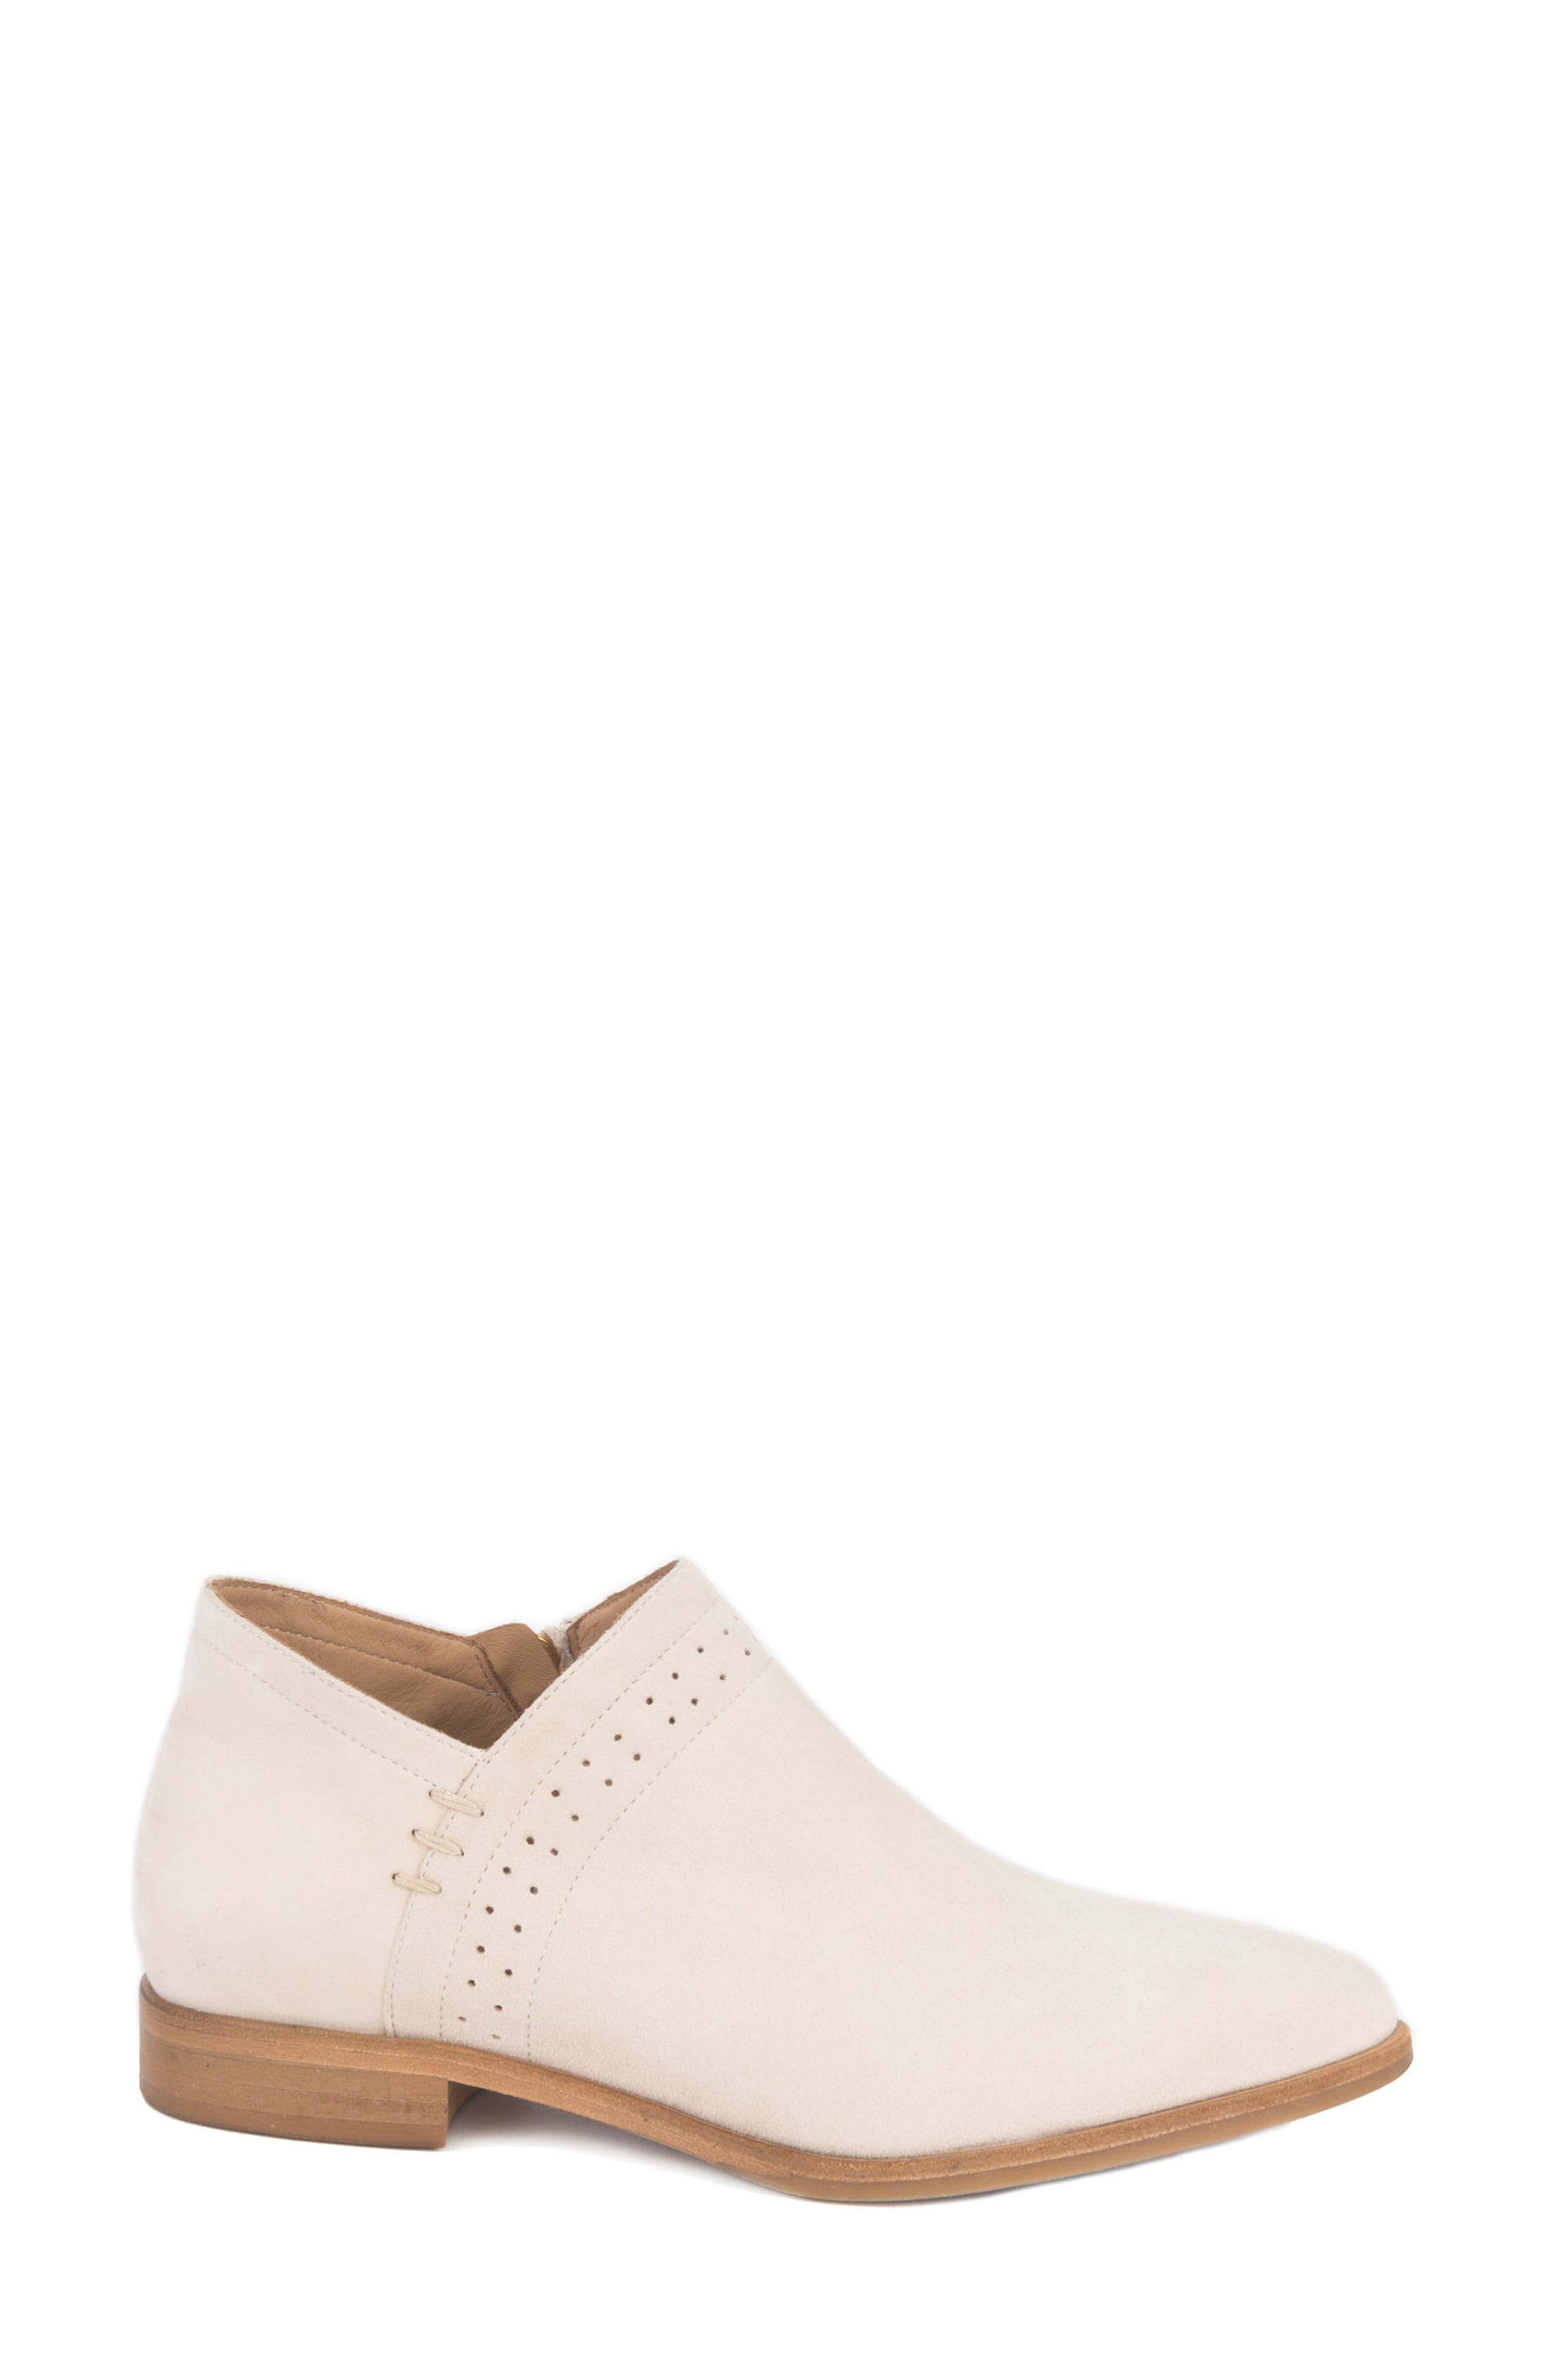 Florence Water Resistant Bootie,                             Alternate thumbnail 3, color,                             250